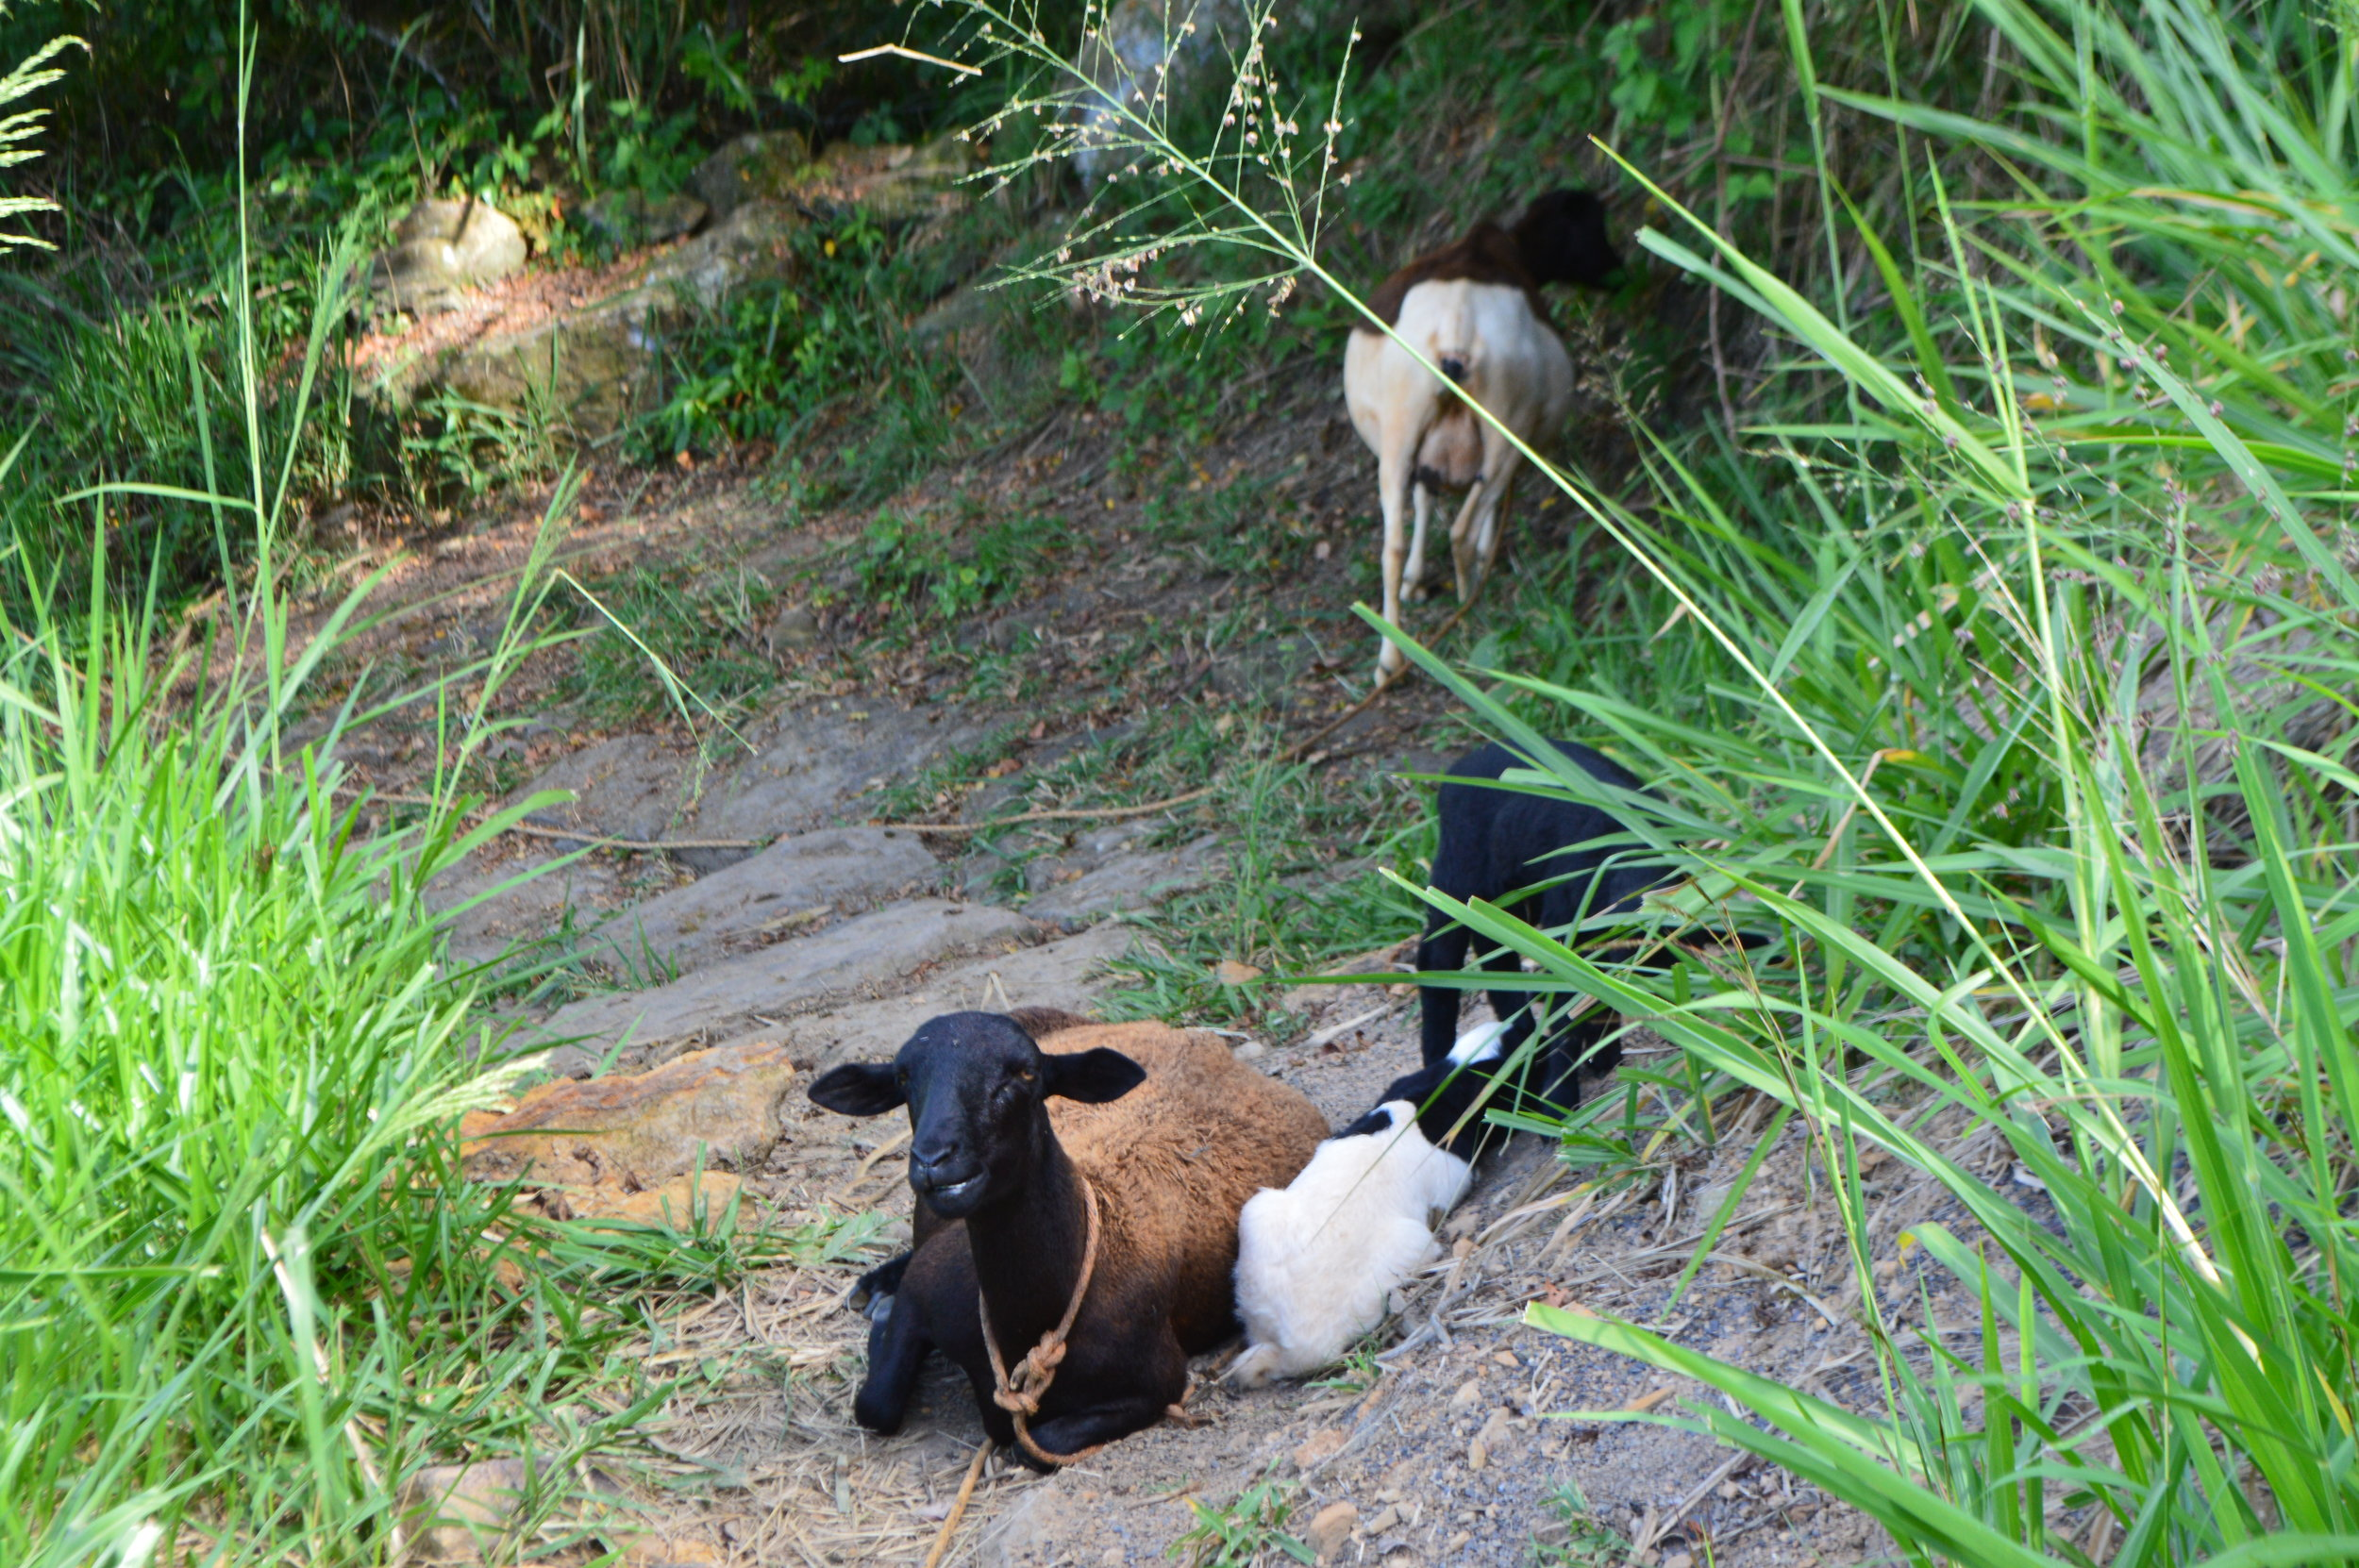 We circumvented the goats that were casually sitting in the middle of the path